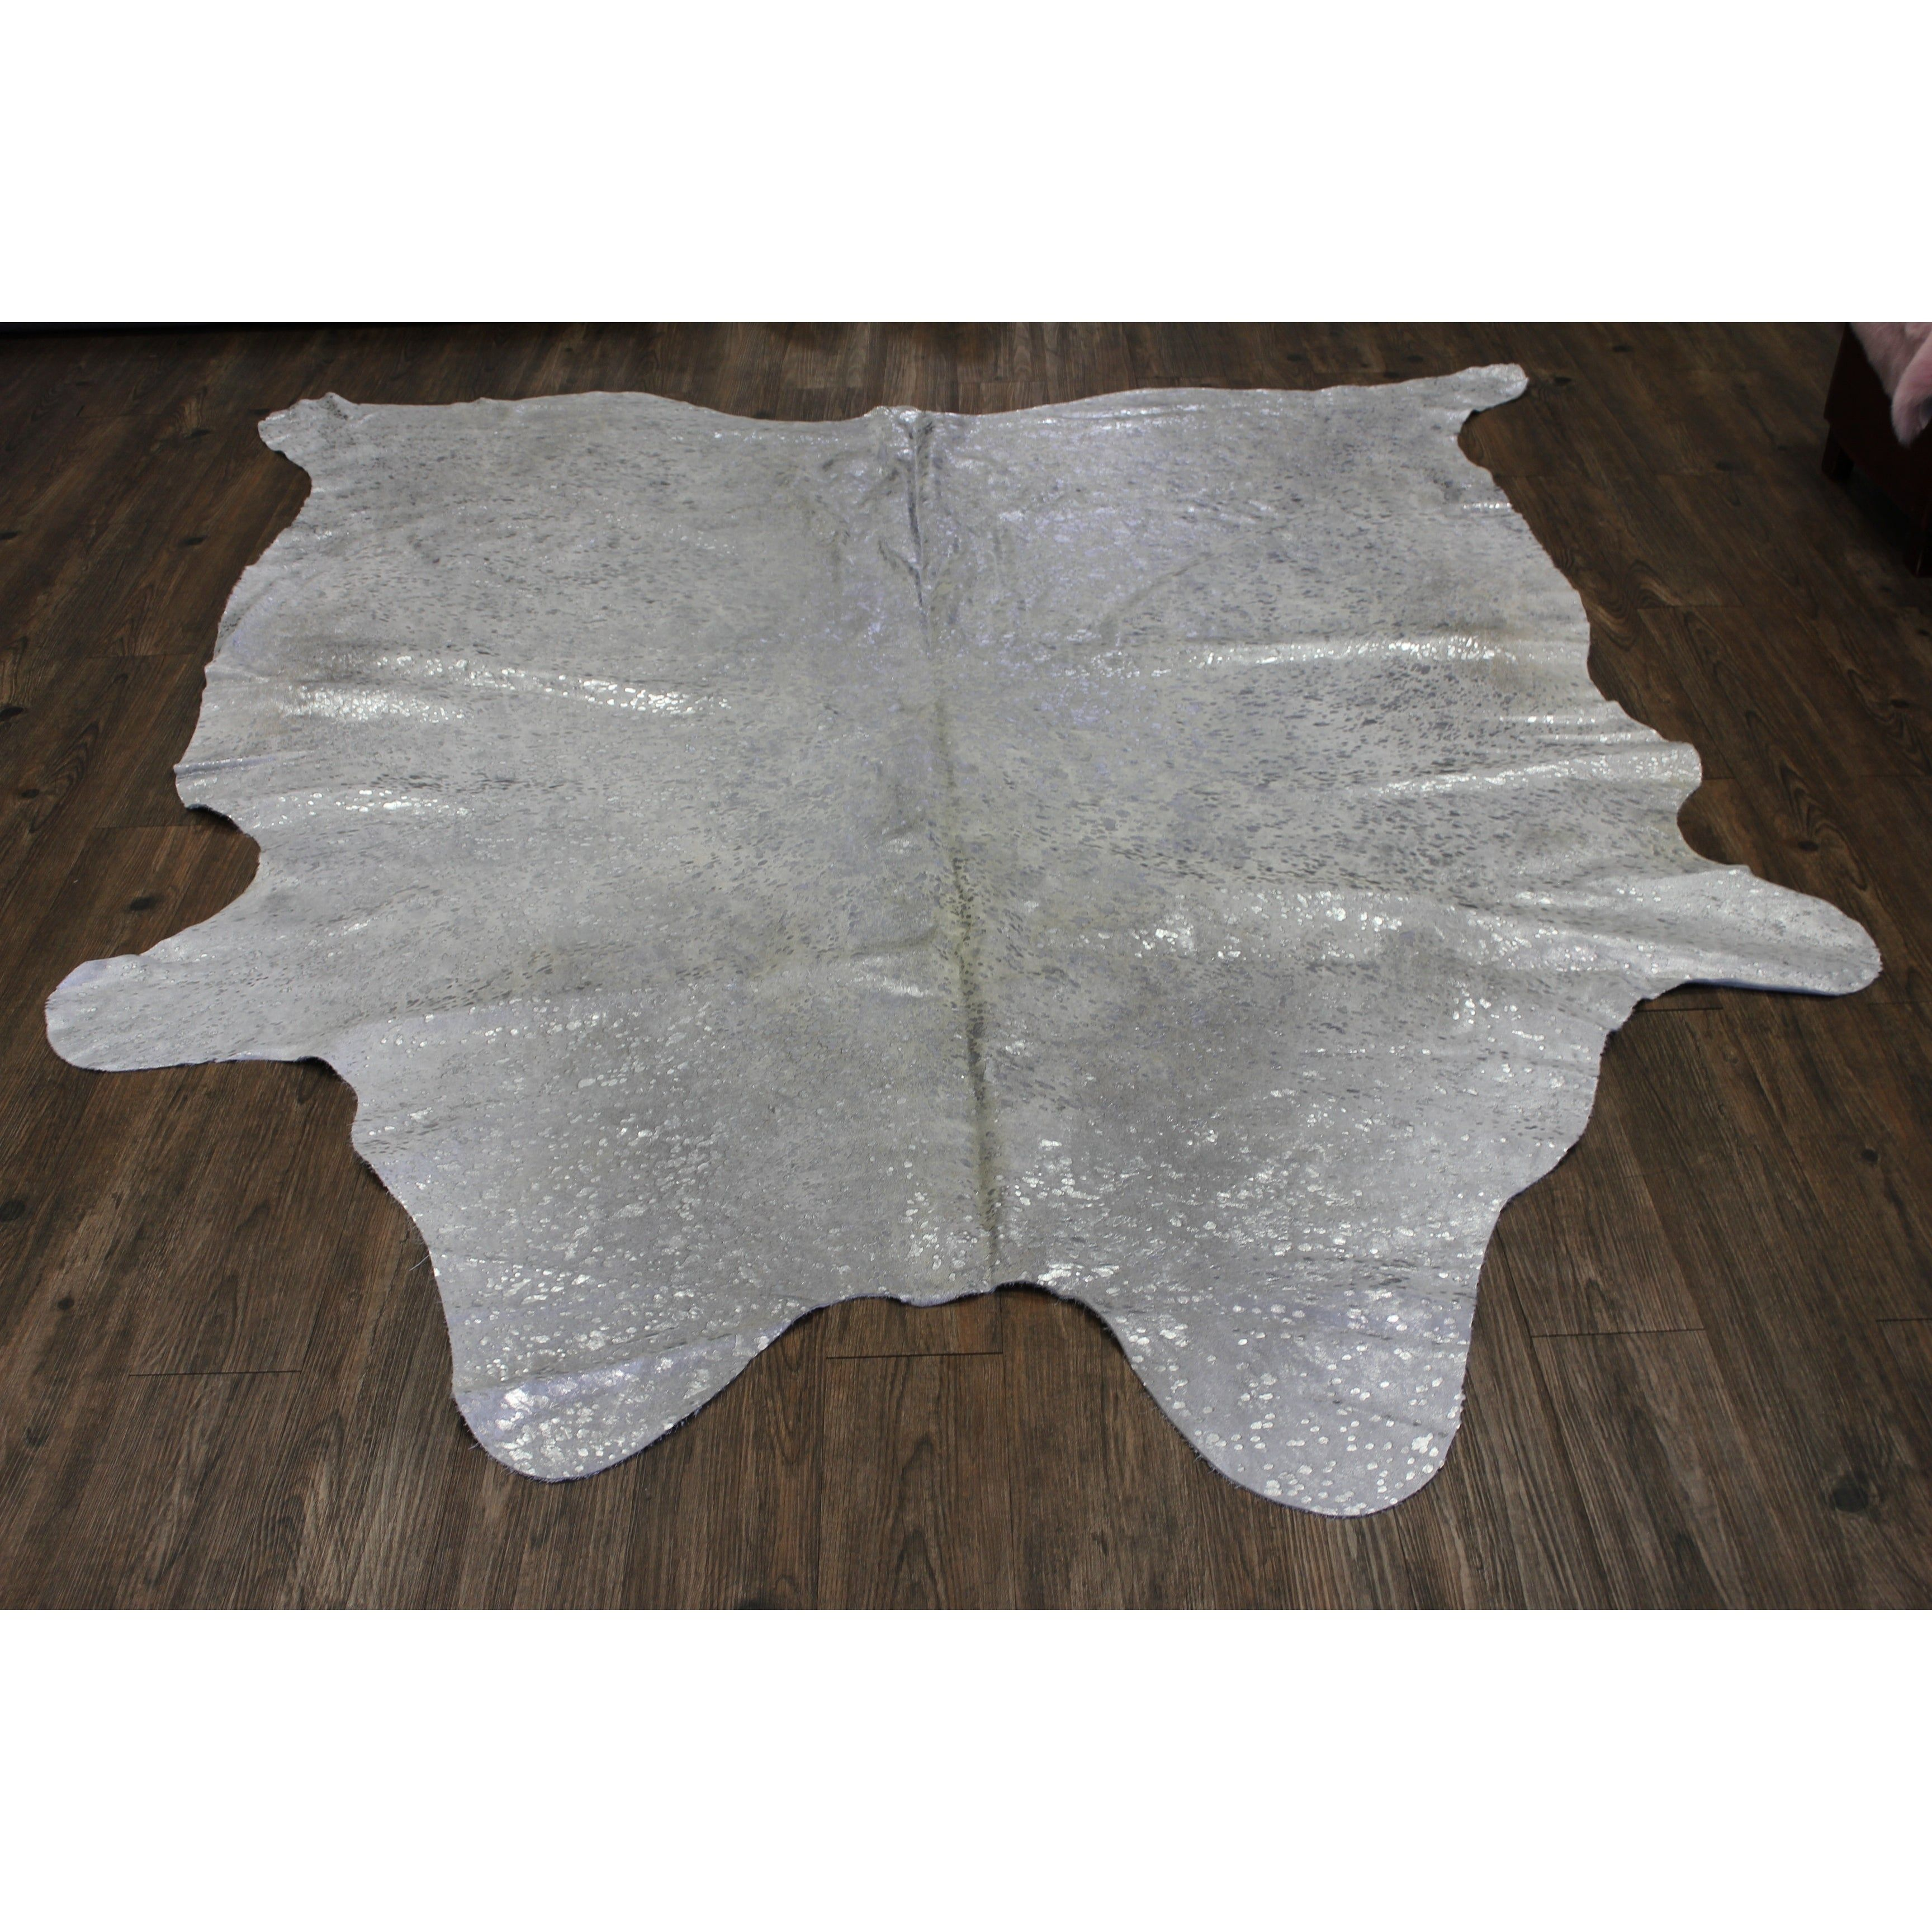 Silver Metallic On White Large Real Natural Cowhide Rug Area Rugs Silver Gray Cow Hide Rug Metallic Rugs Colorful Rugs